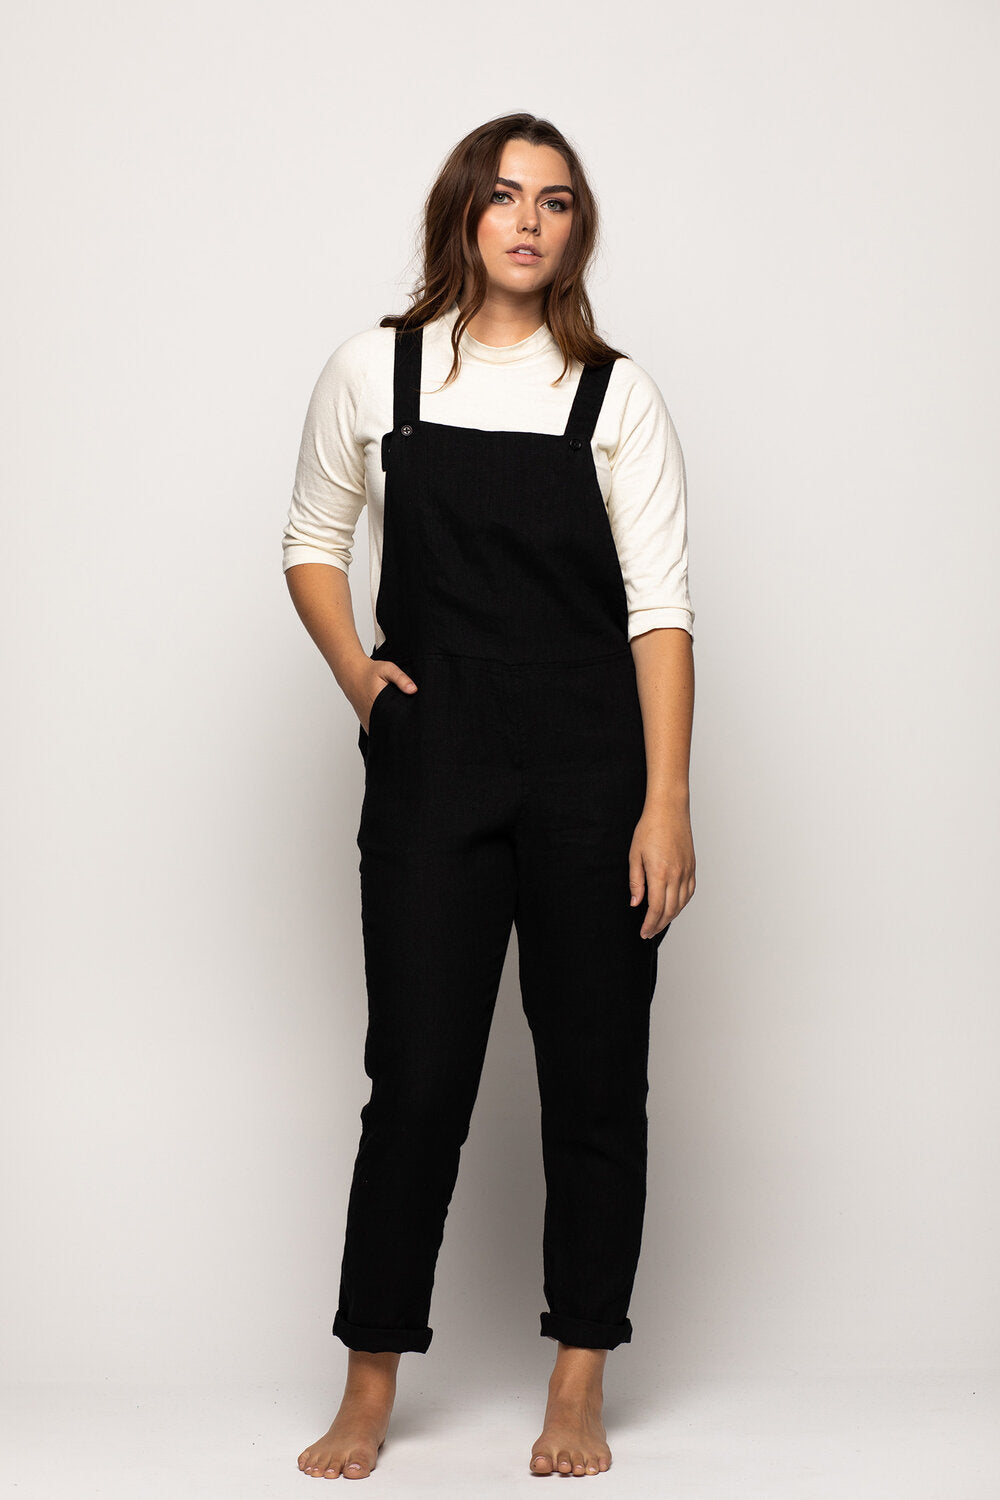 Overalls No. 10 in Black Linen  — Pyne & Smith Clothiers